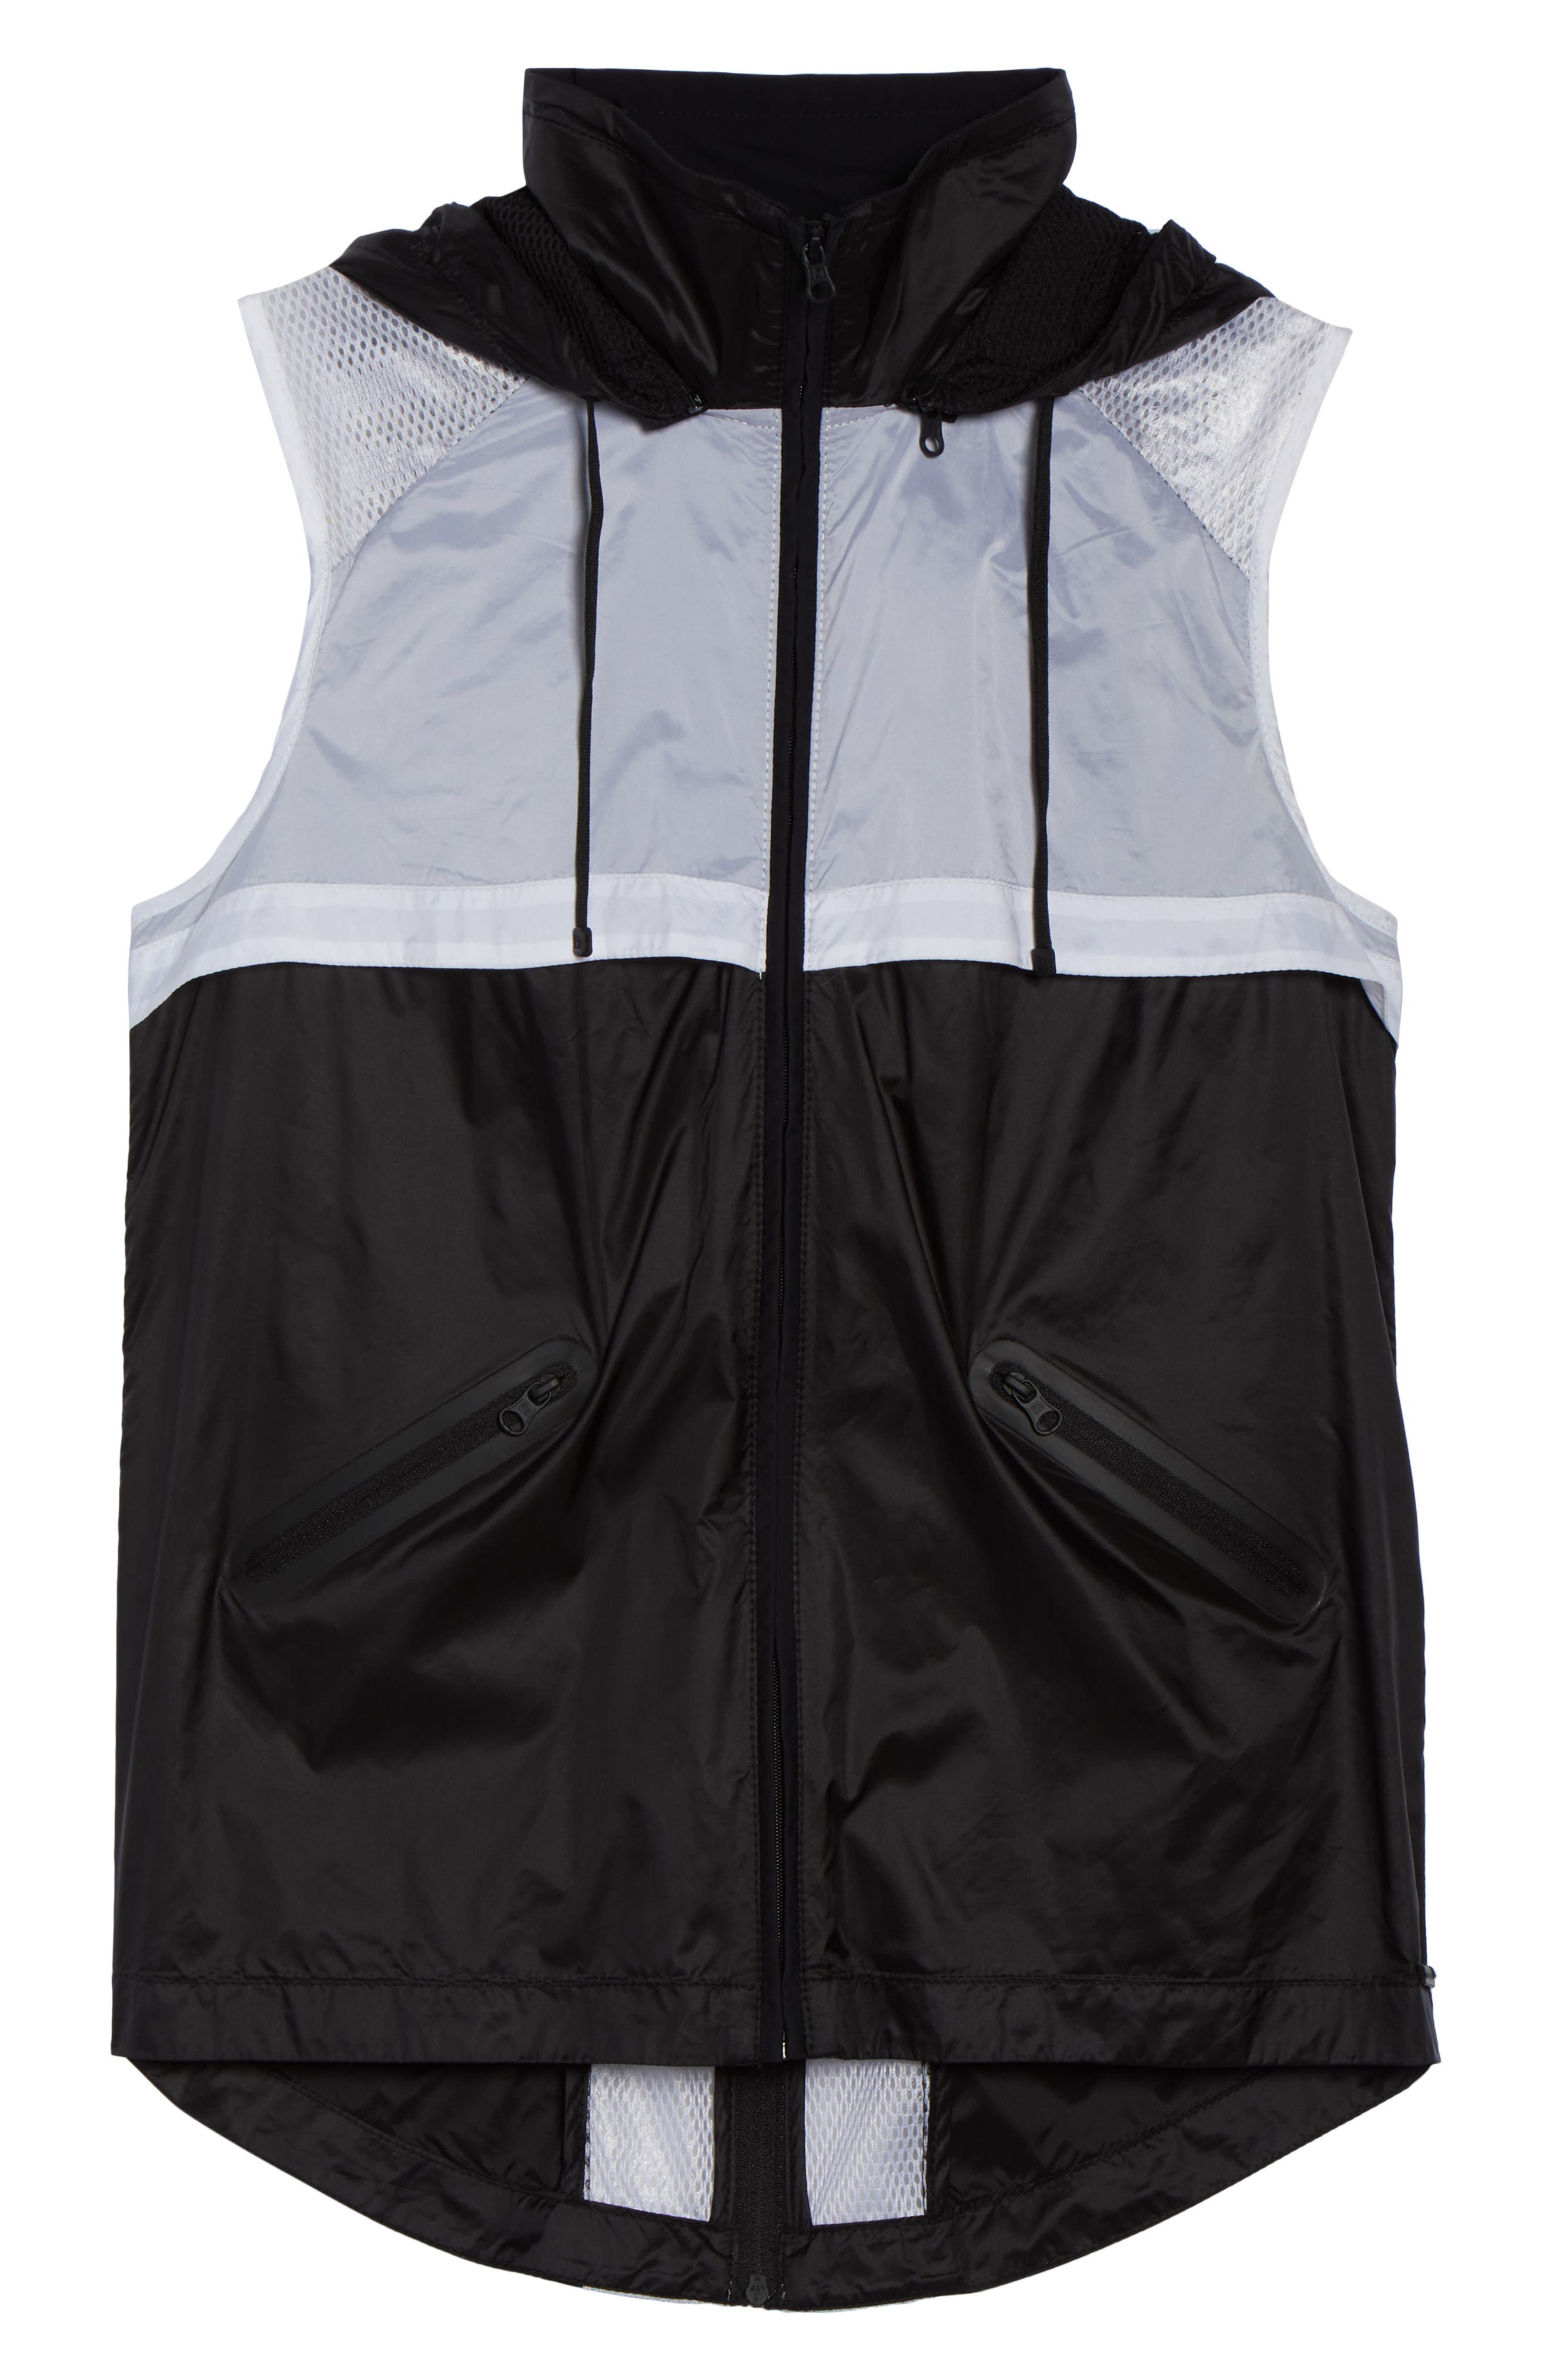 Moonlight Vest,                             Alternate thumbnail 6, color,                             BLACK